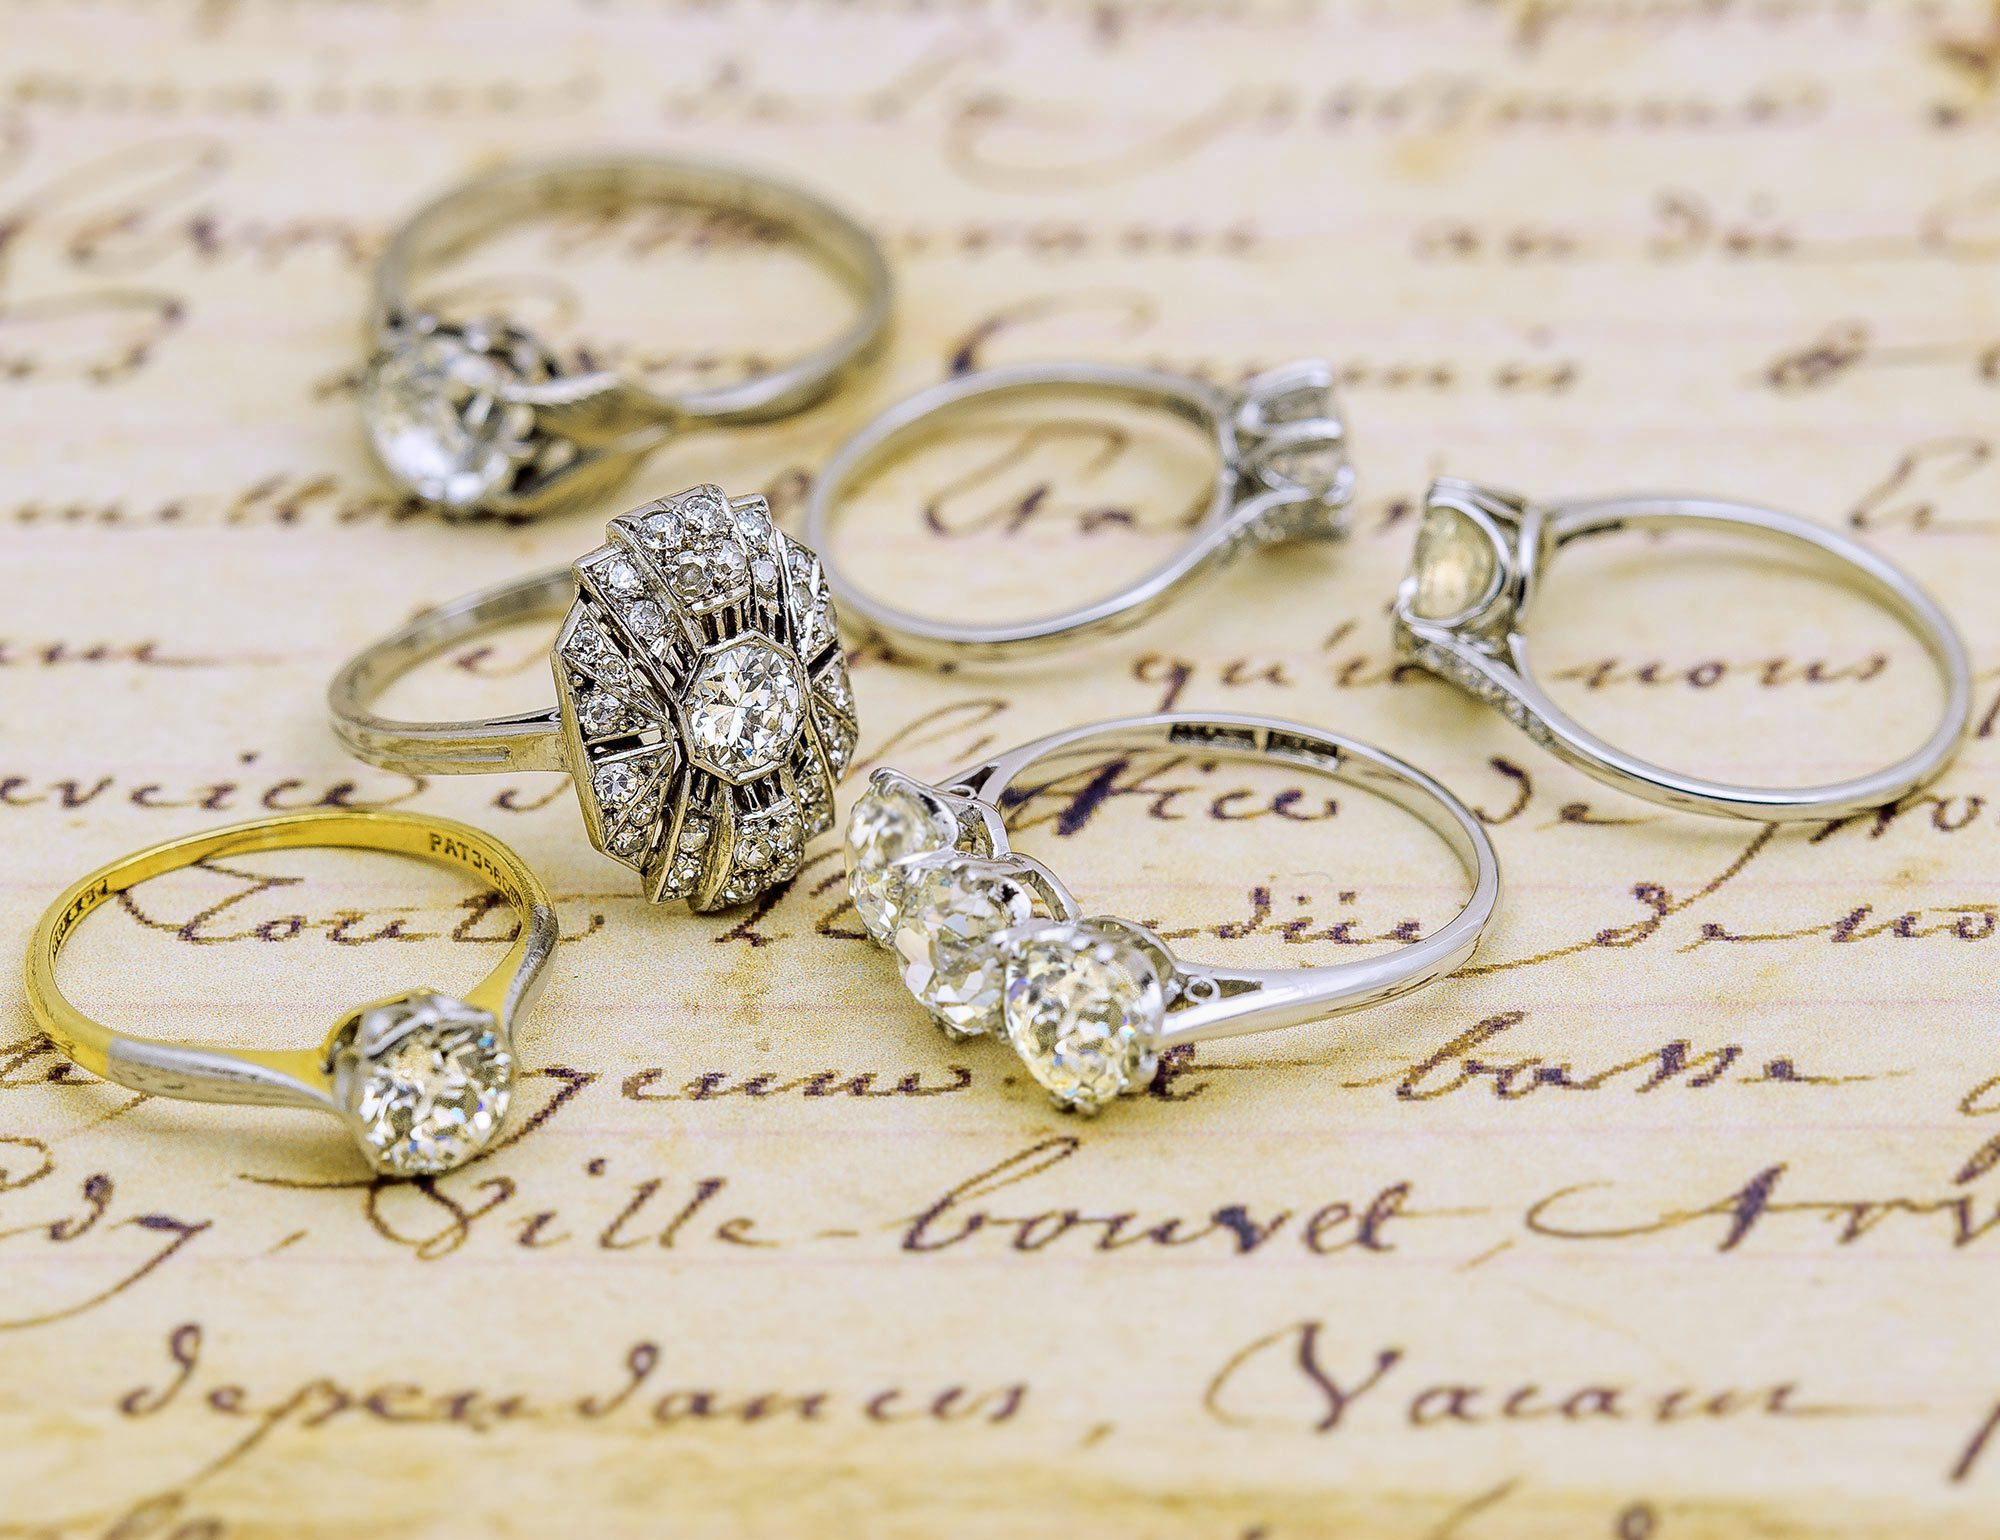 Visit our shop for a handpicked selection of antique and vintage engagement rings